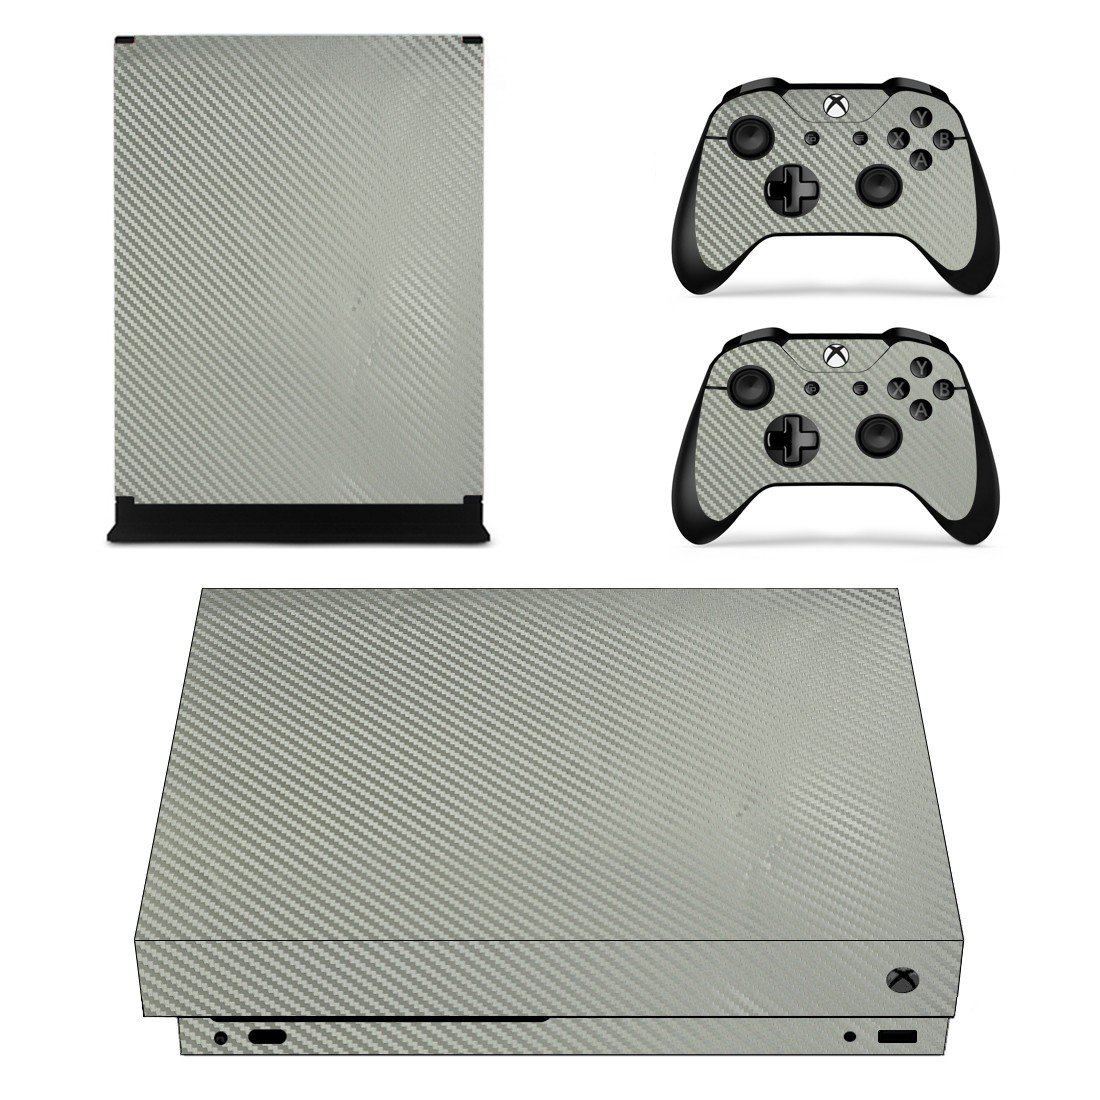 Silver Carbon Fiber xbox one X skin decal for console and 2 controllers